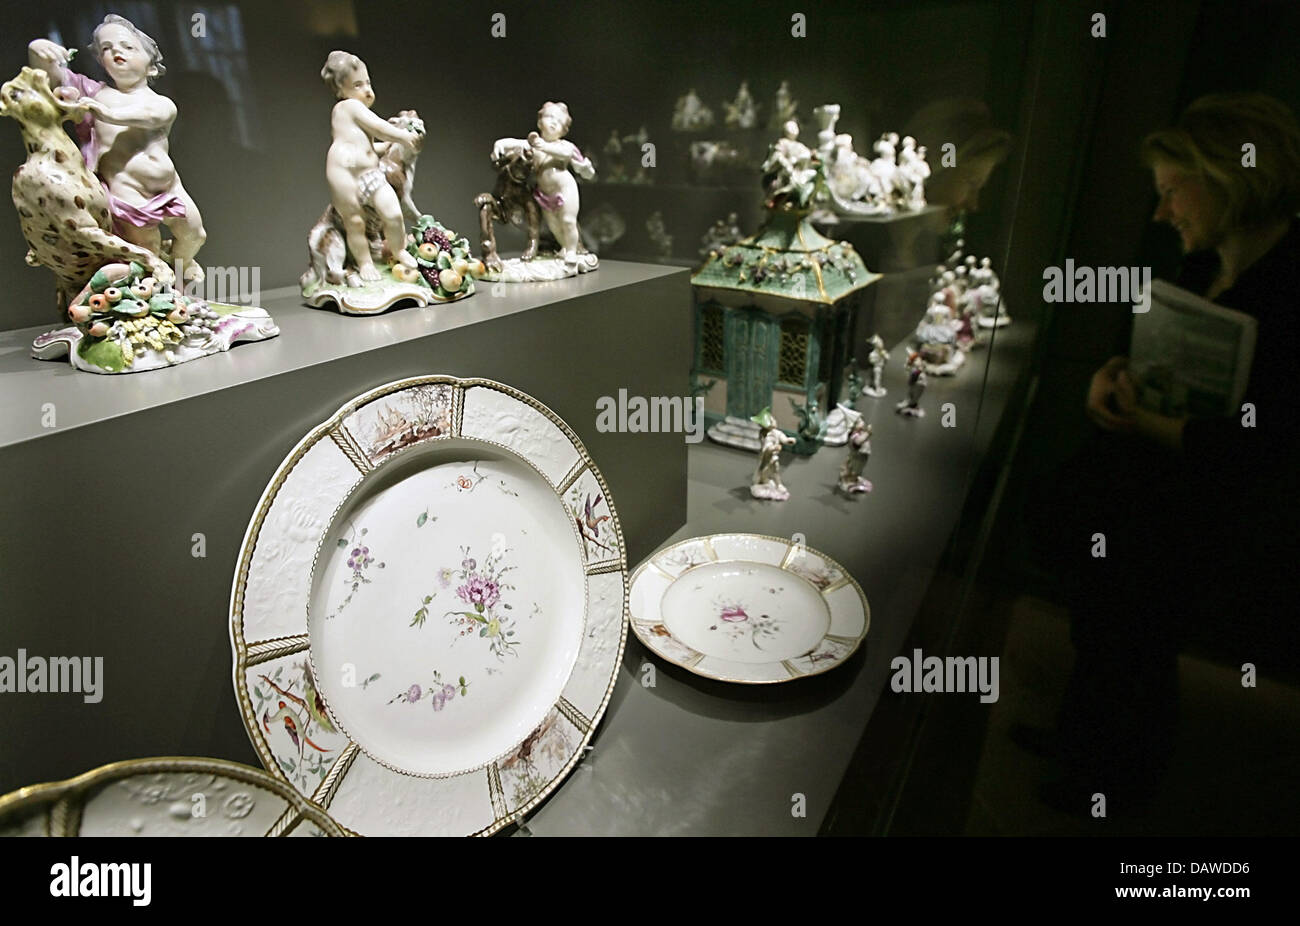 Mannheim Frankenthal Porcelain Of The Frankenthal Manufactury Is Displayed At The